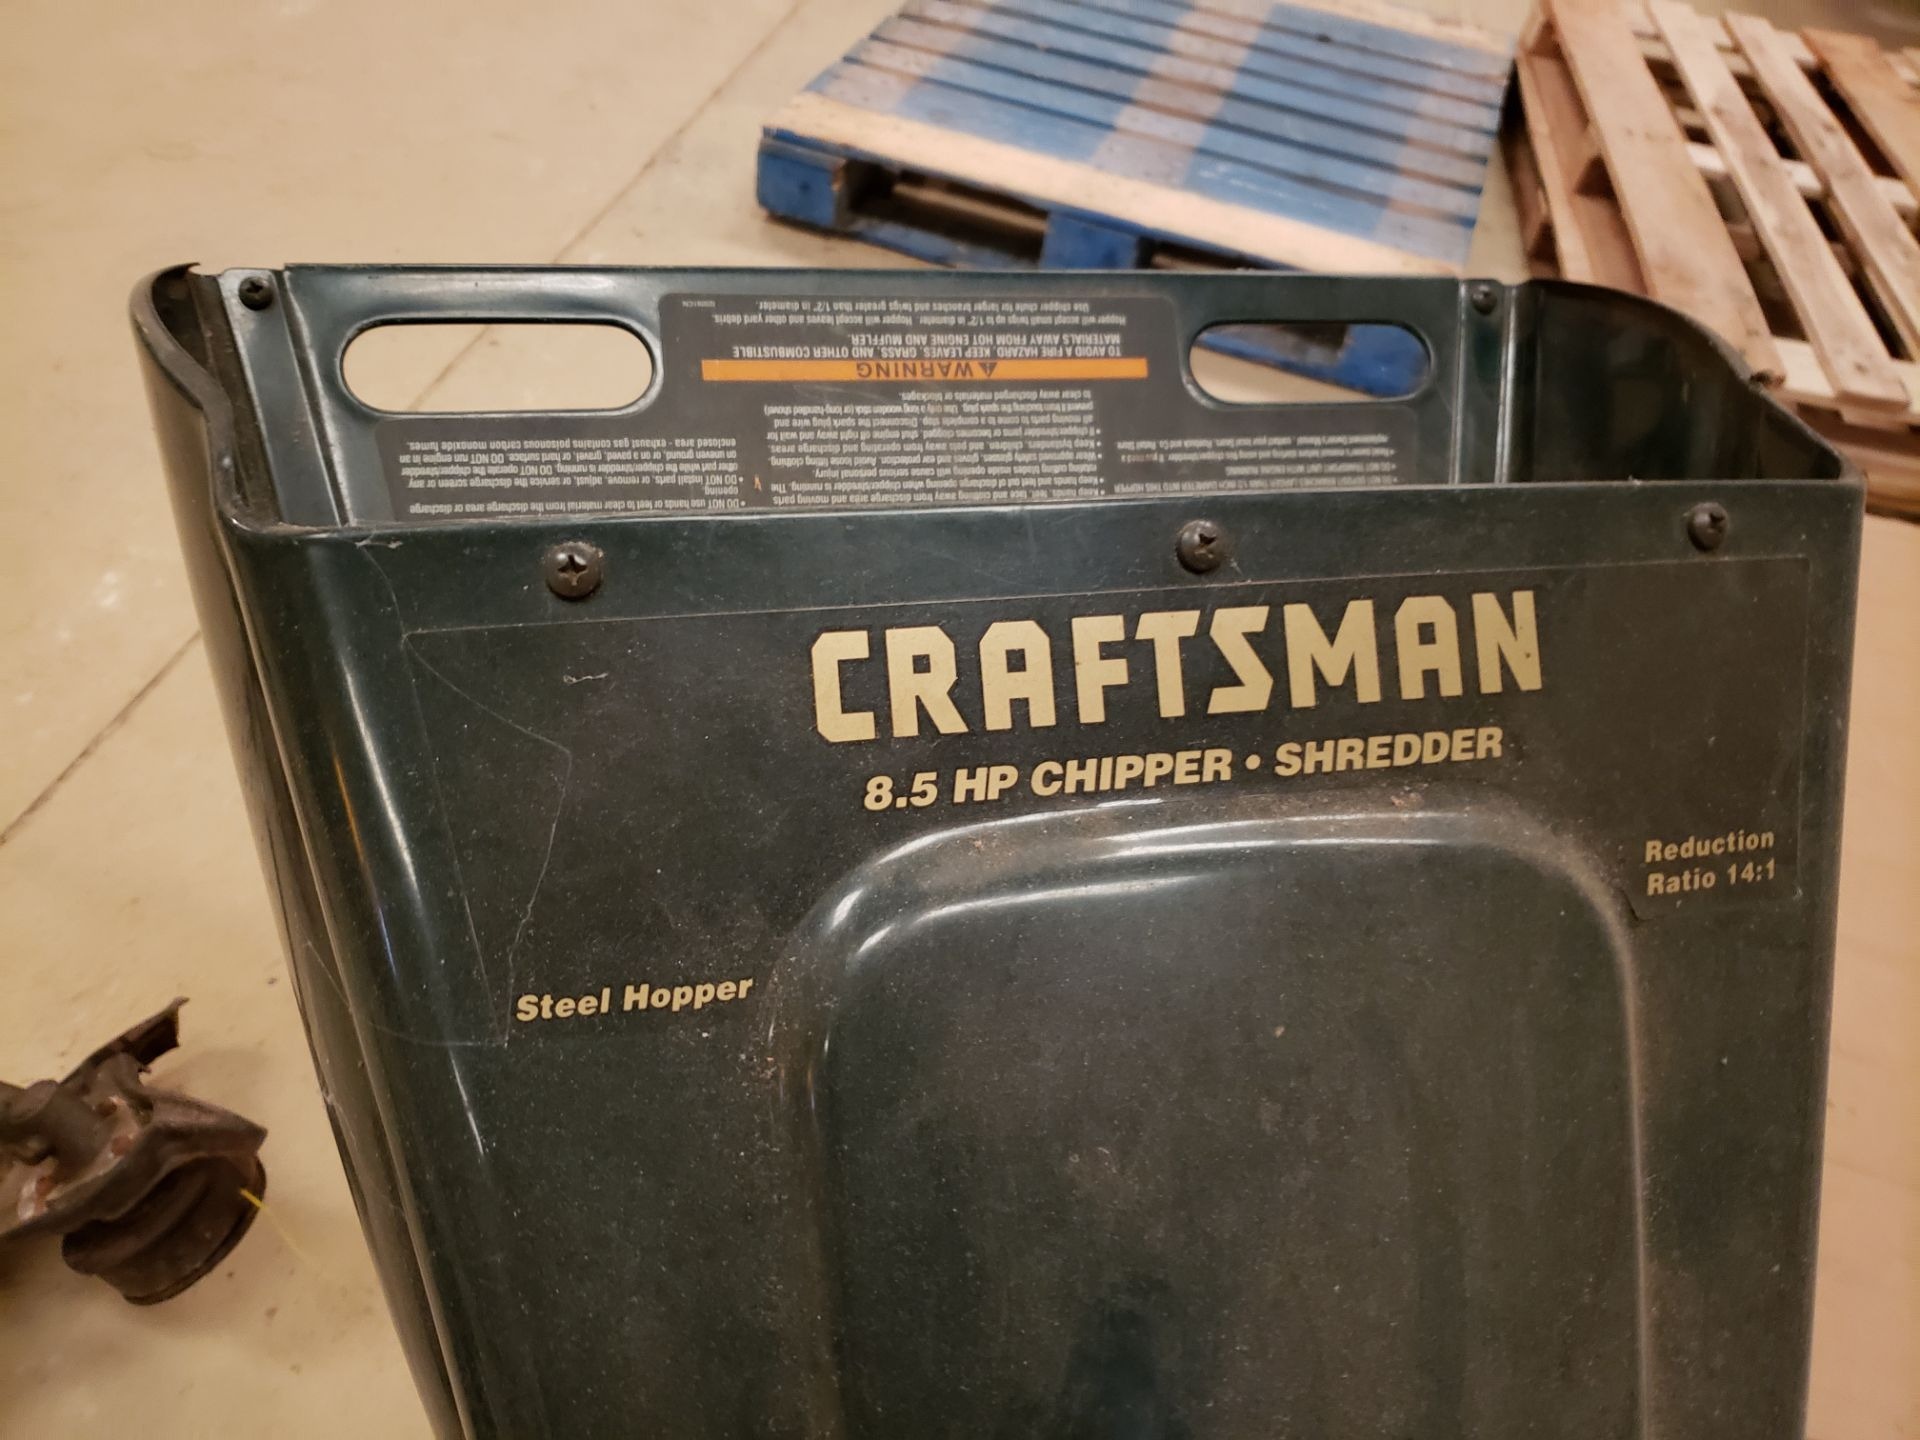 Craftsman 8.5 HP Wood Chipper | Rig Fee: Hand Carry or Contact Rigger - Image 2 of 2